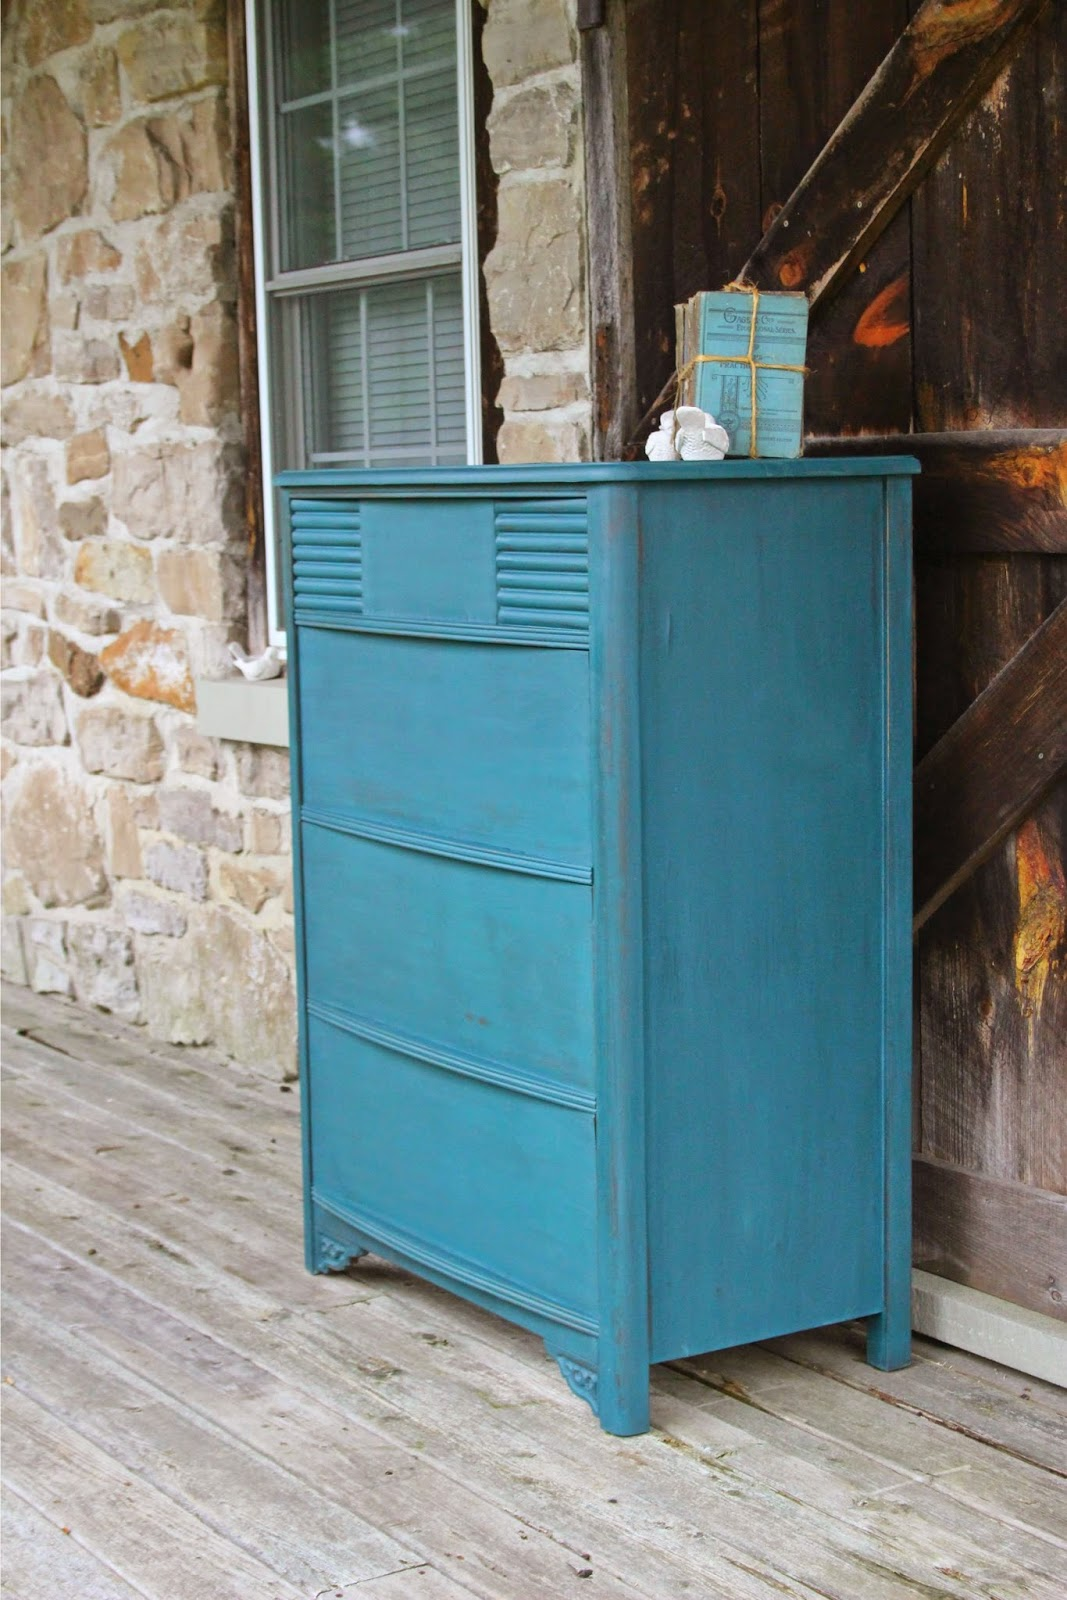 #367386 Laurel's Attic : Teal Solid Wood Vintage Dresser SOLD with 1067x1600 px of Recommended Antique Teal Dresser 16001067 save image @ avoidforclosure.info